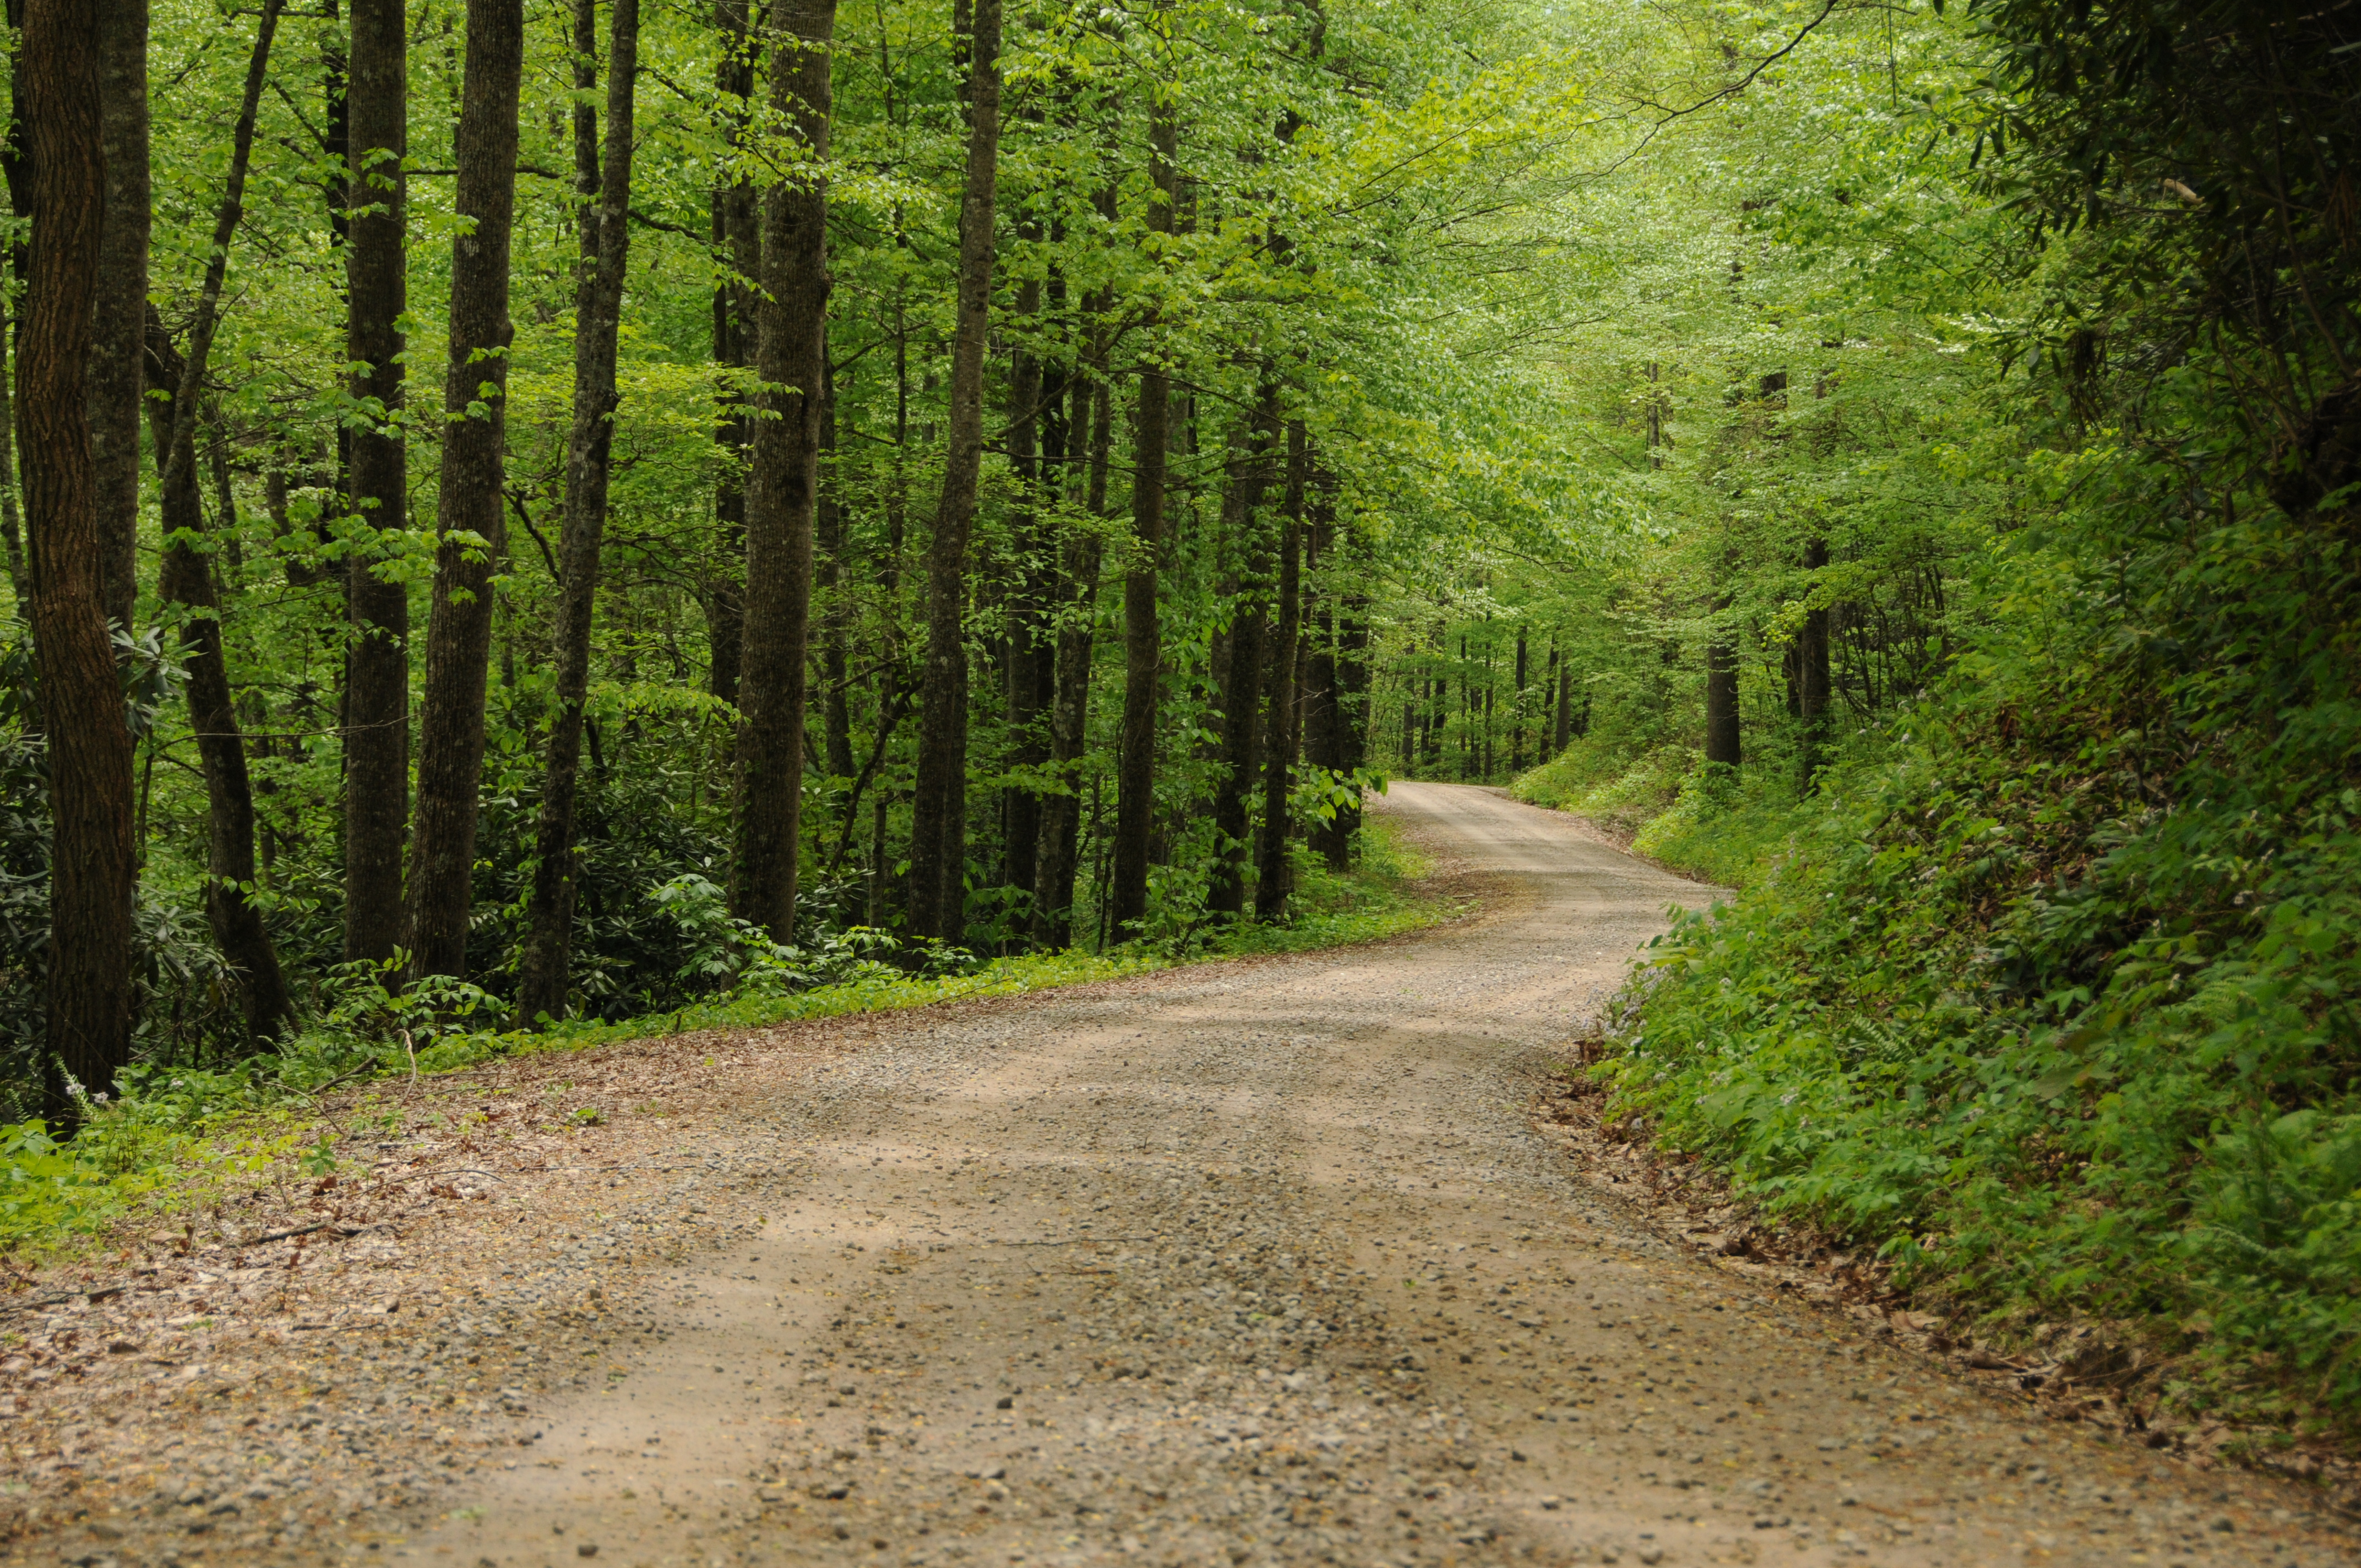 country road between tall trees